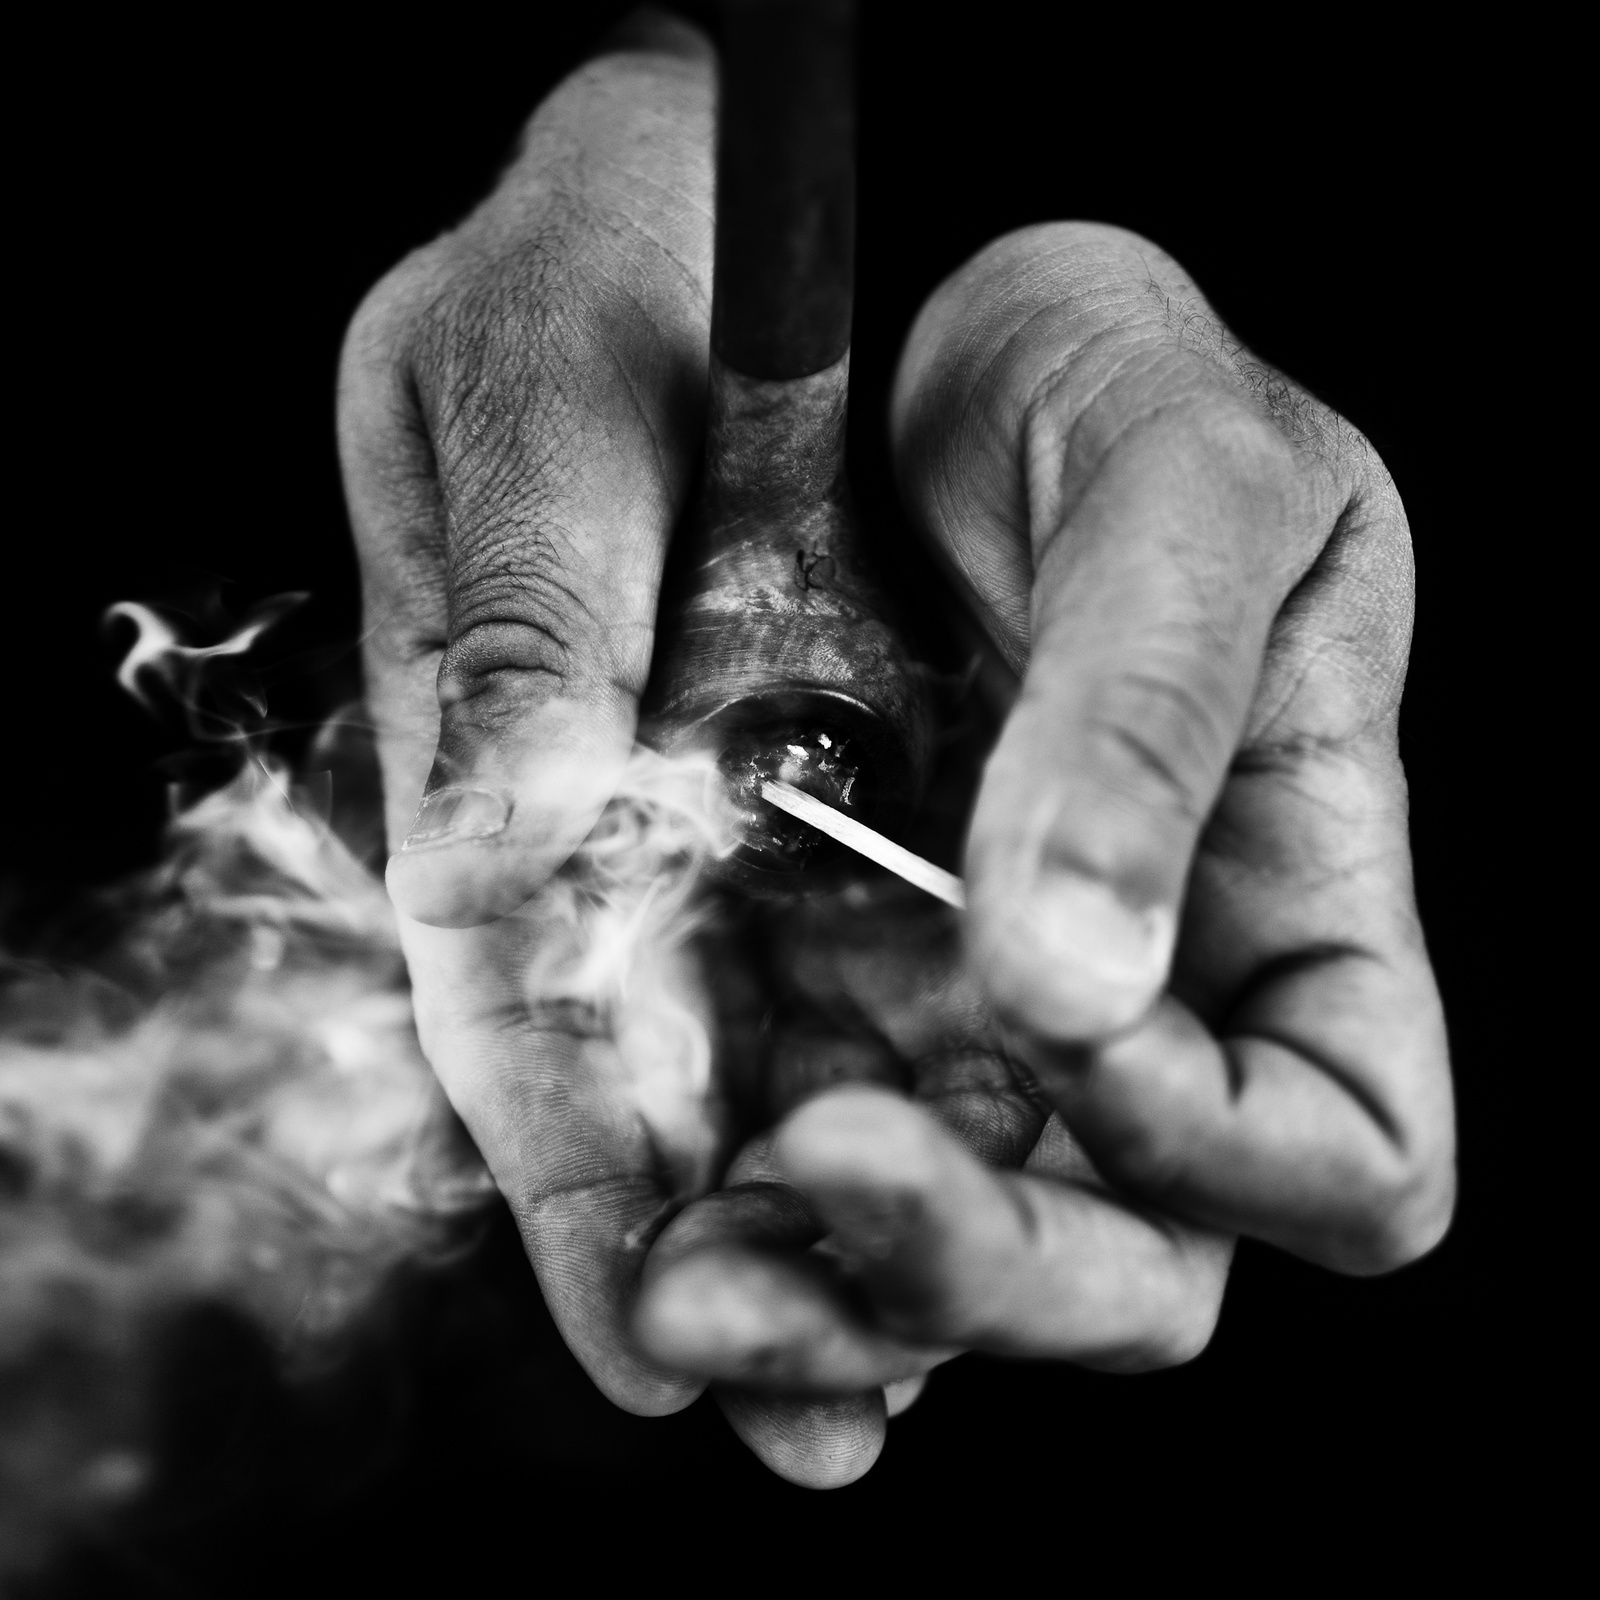 Benoit Courti - Deep Black   Black and white photography, Show of hands,  Dark photography